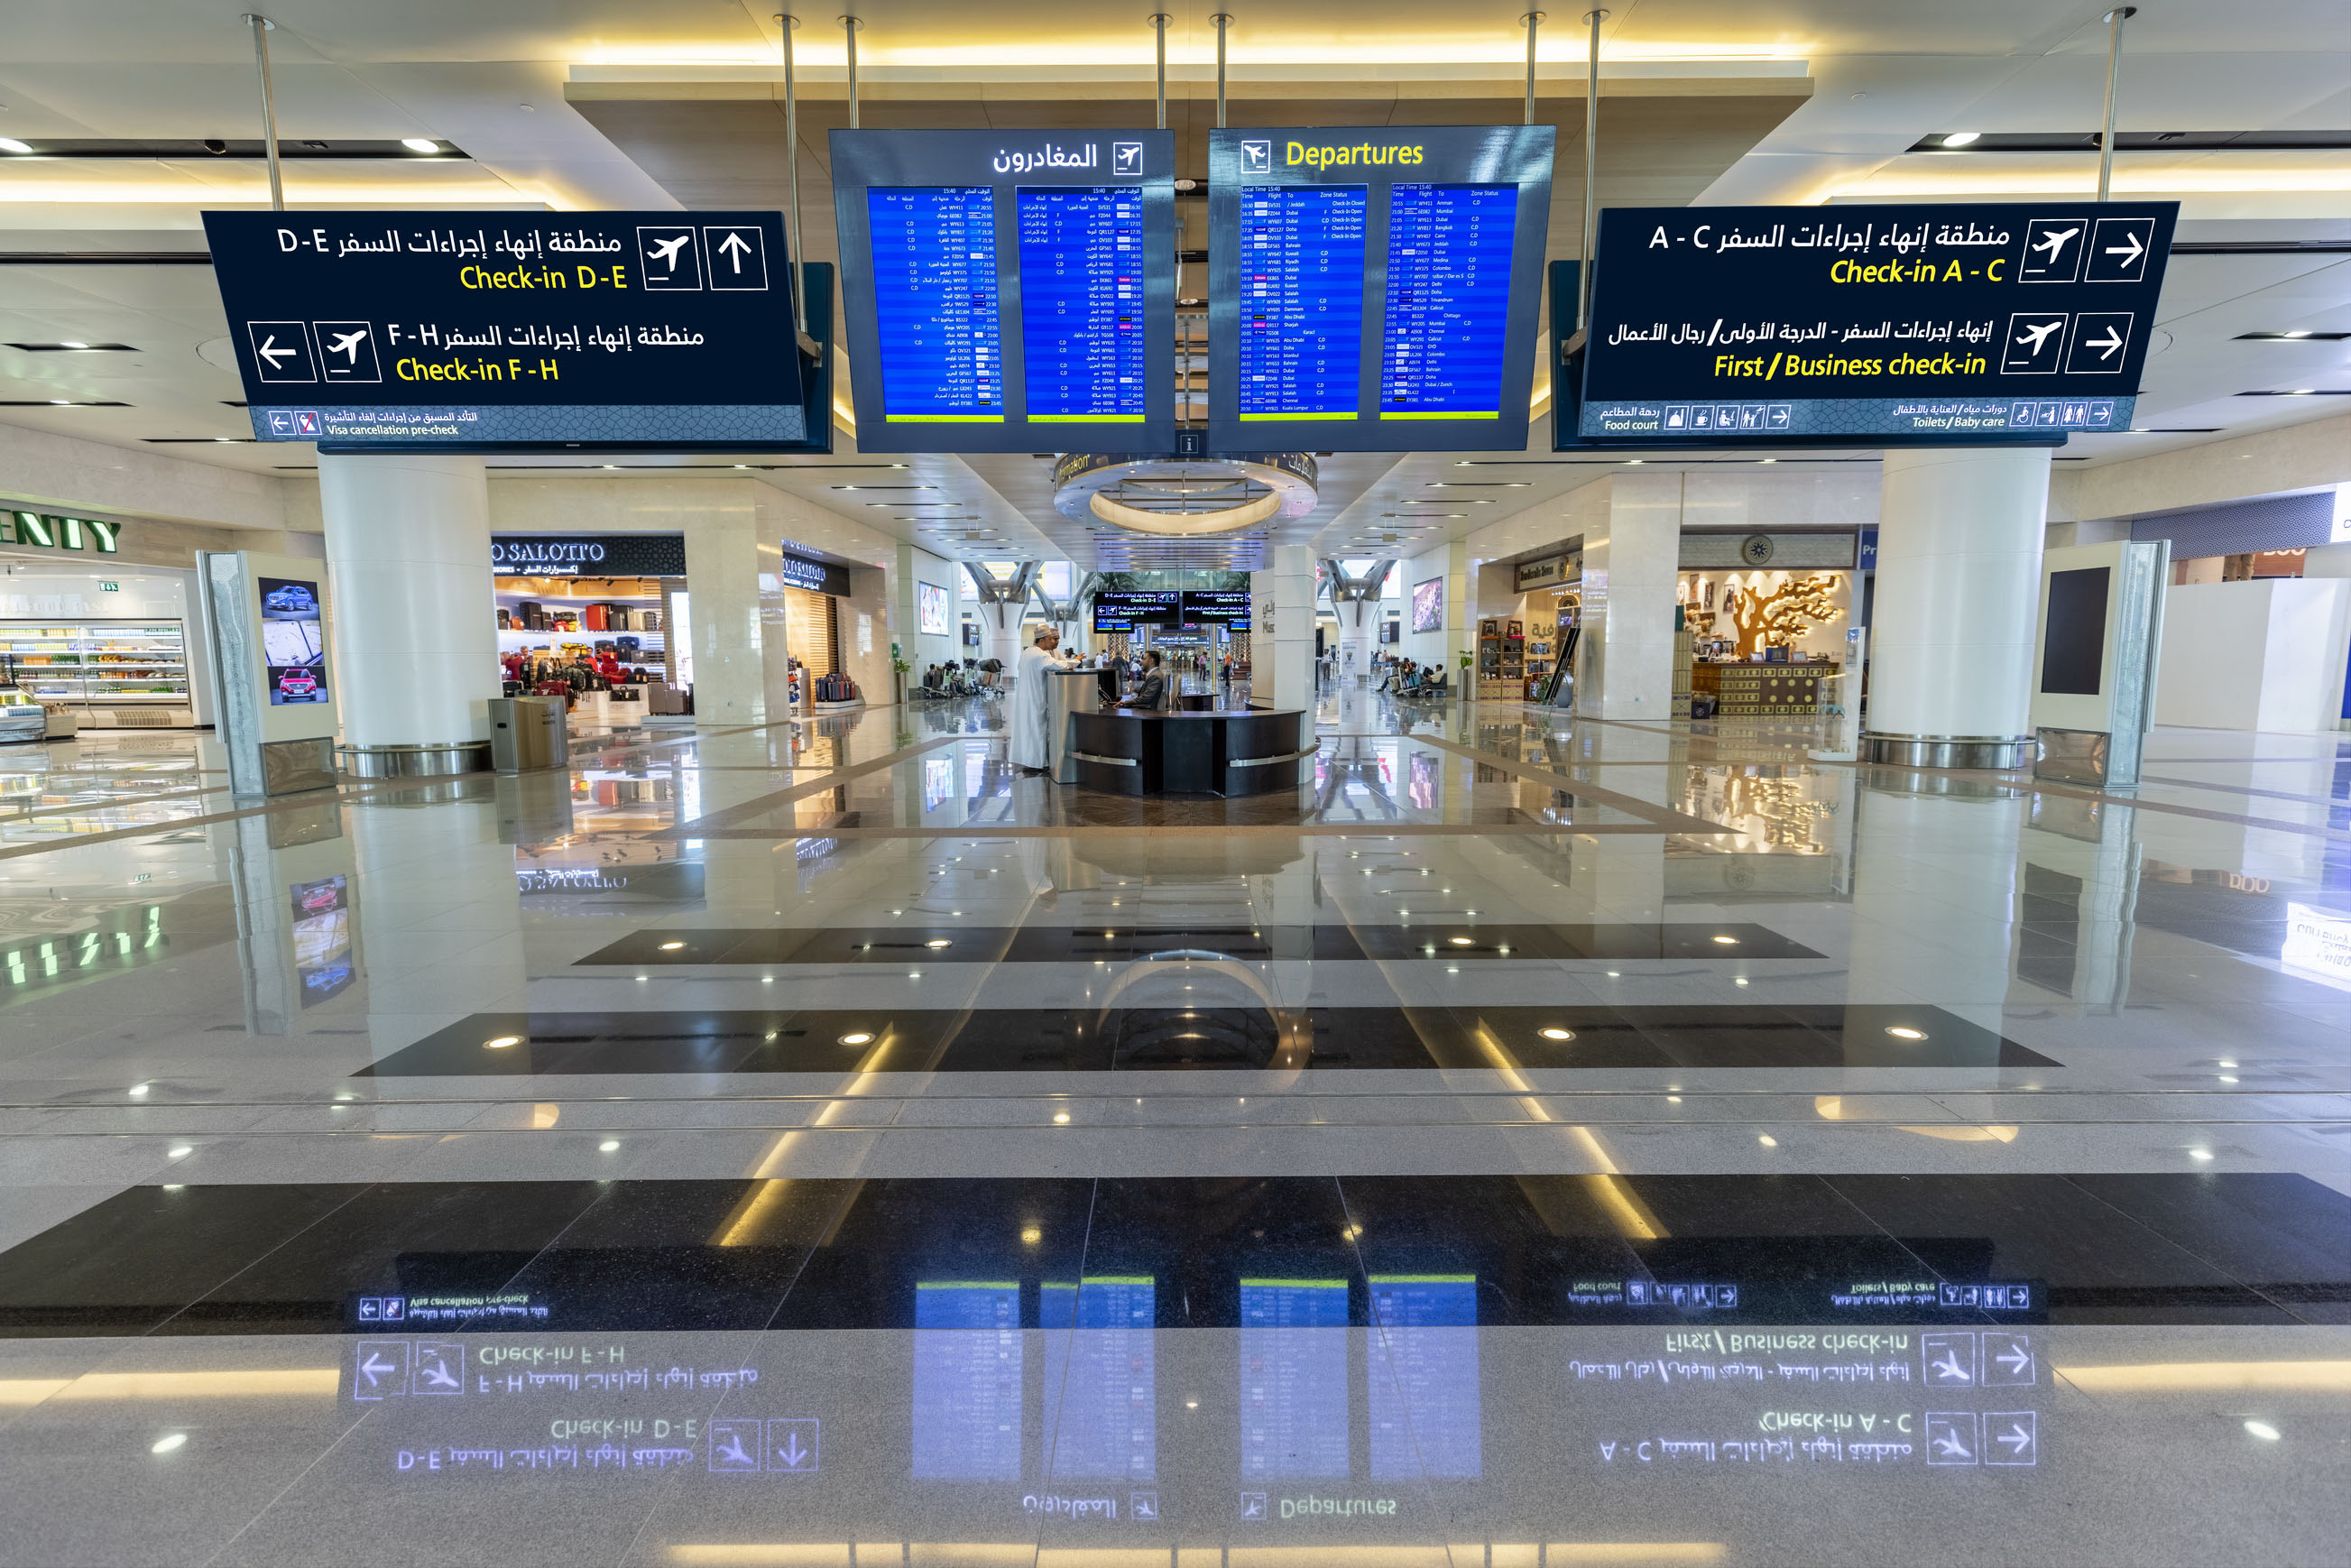 Muscat International Airport won Top Spot for Fastest Growing Airport in the Middle East based on Passengers' Satisfaction